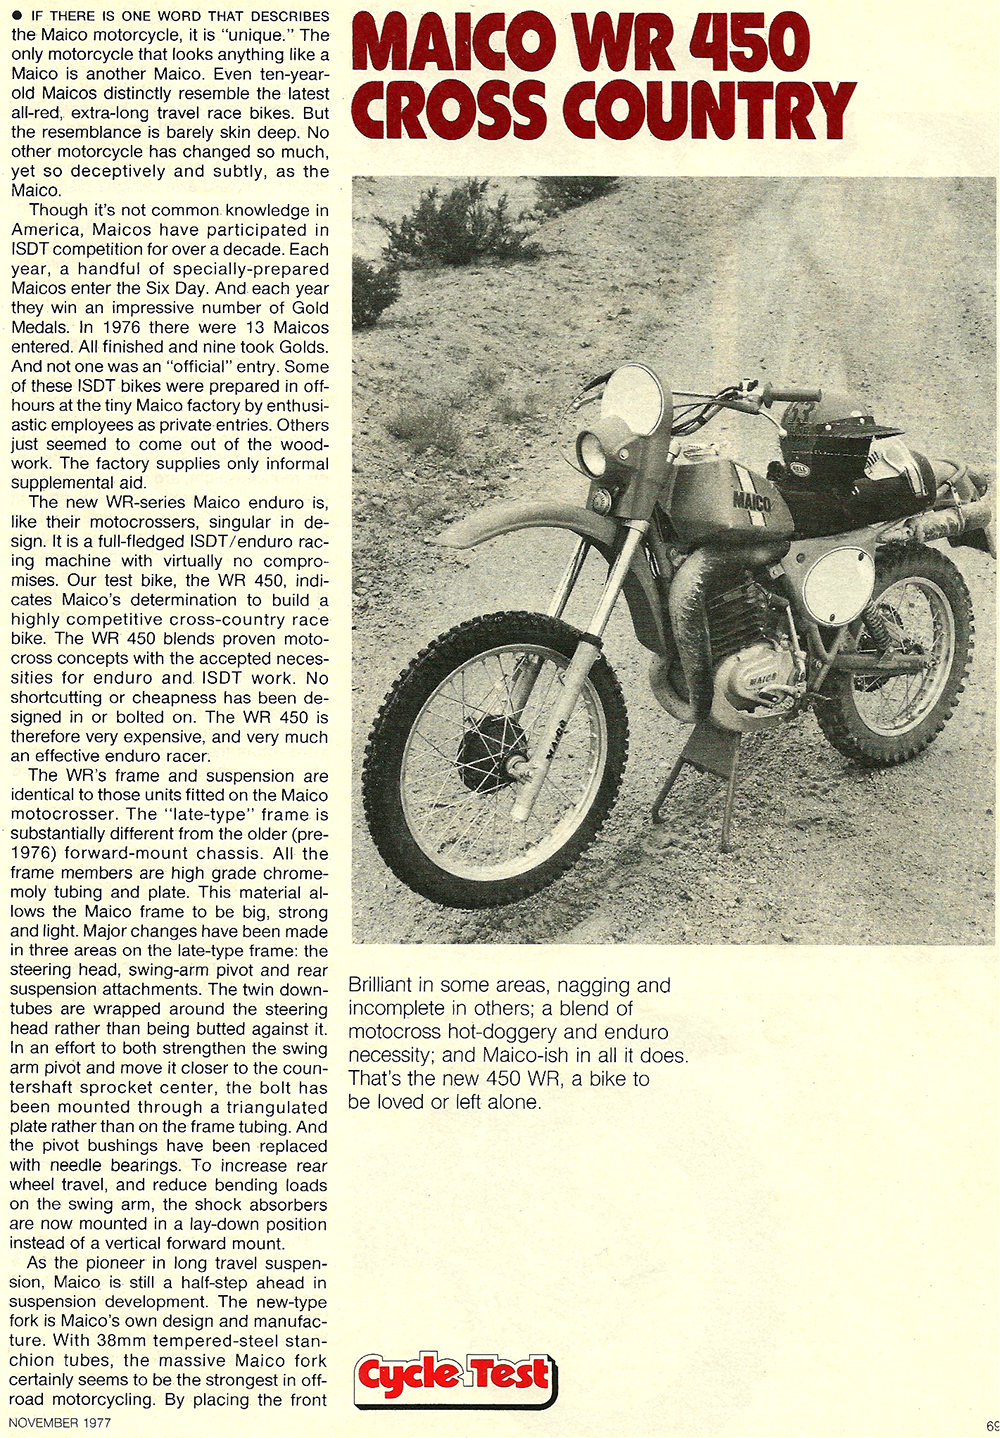 1977 Maico WR450 Cross Country XC road test 2.jpg